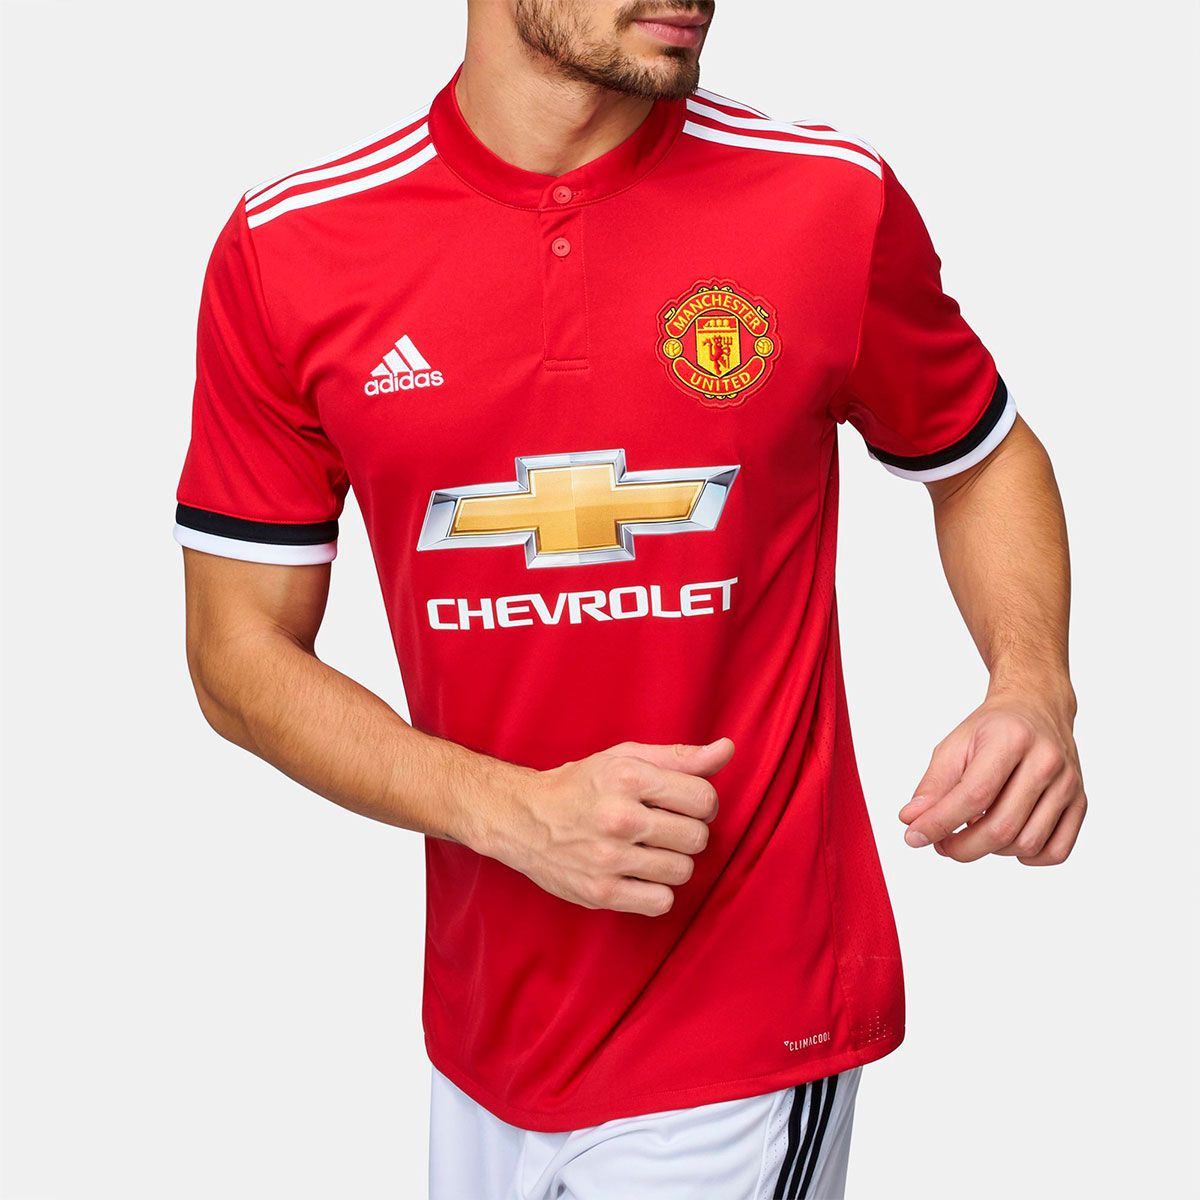 Camisa Manchester United Home Adidas 2017 f3032d8ad090c